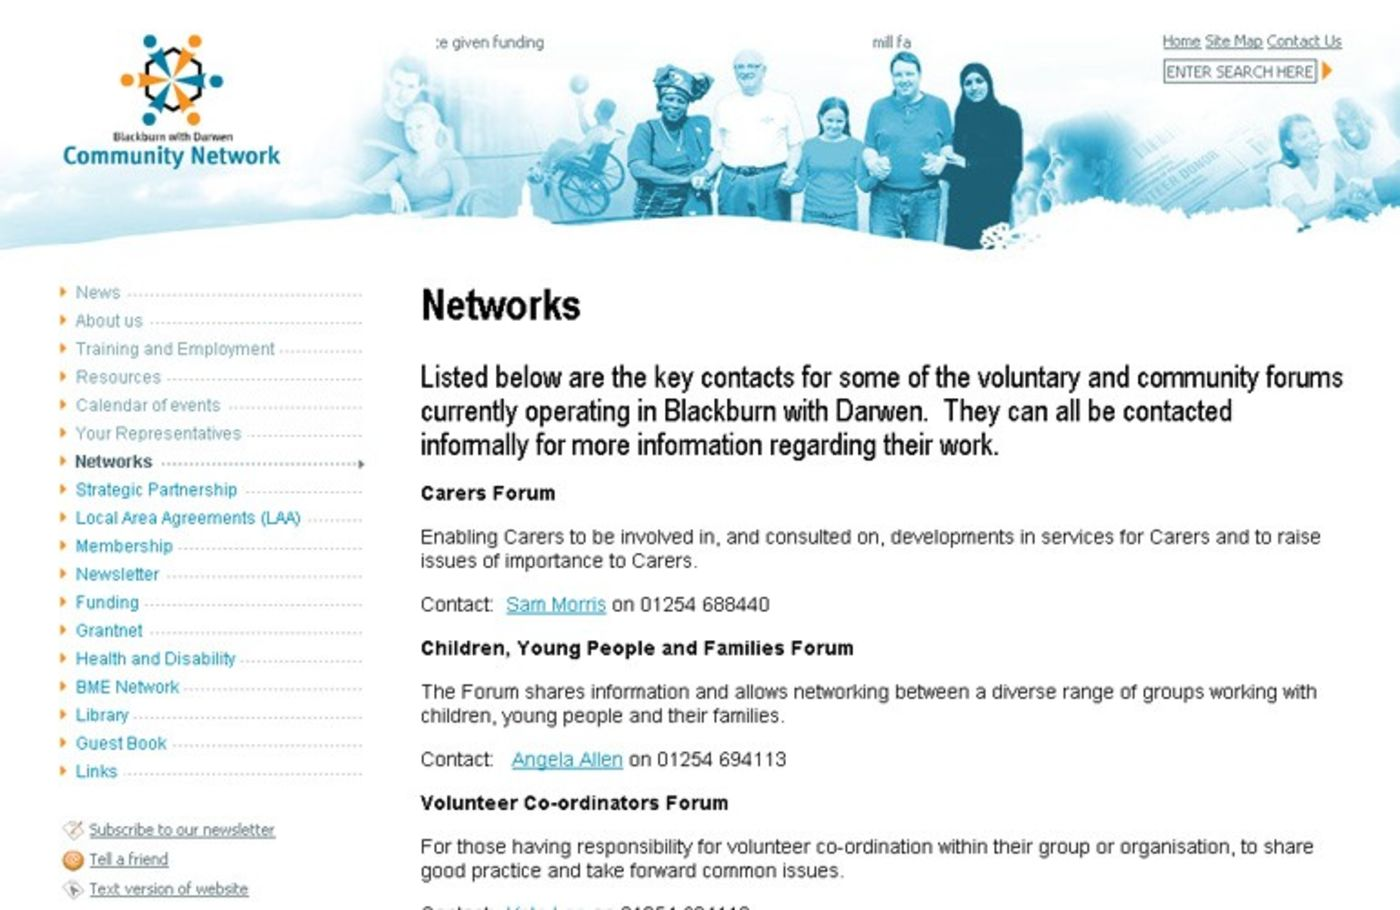 BwD Community Network Networks